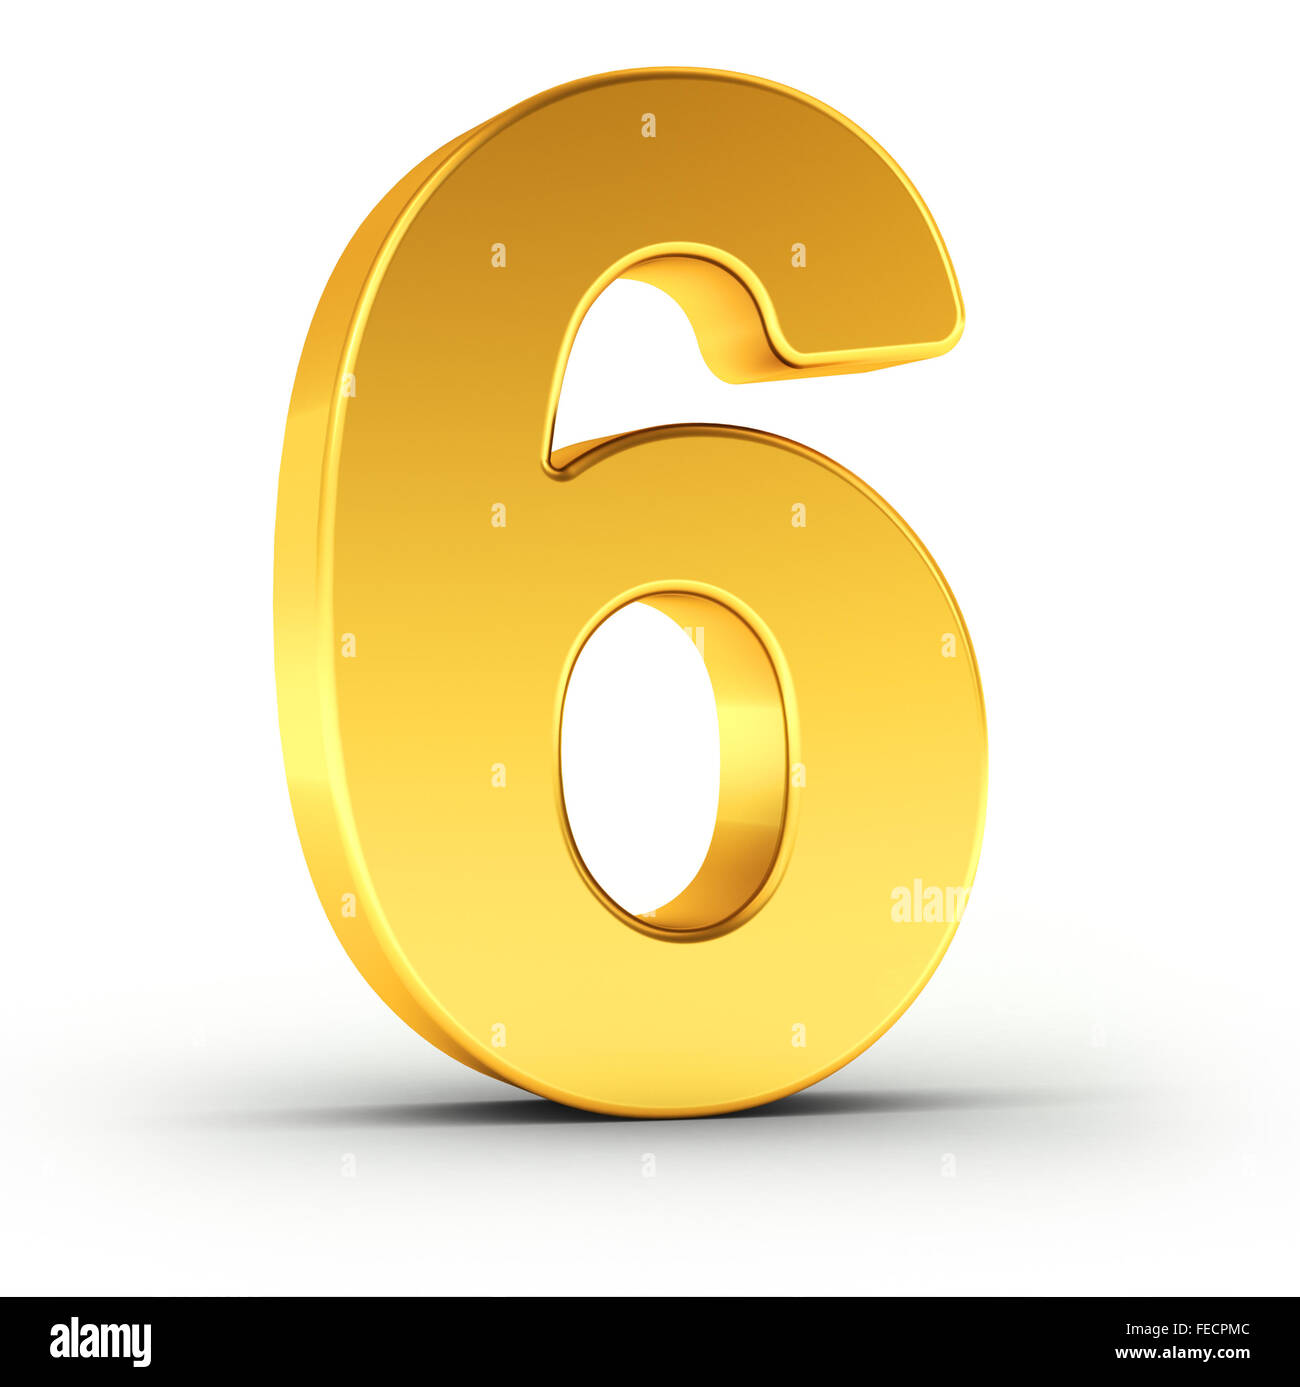 The number six as a polished golden object Stock Photo